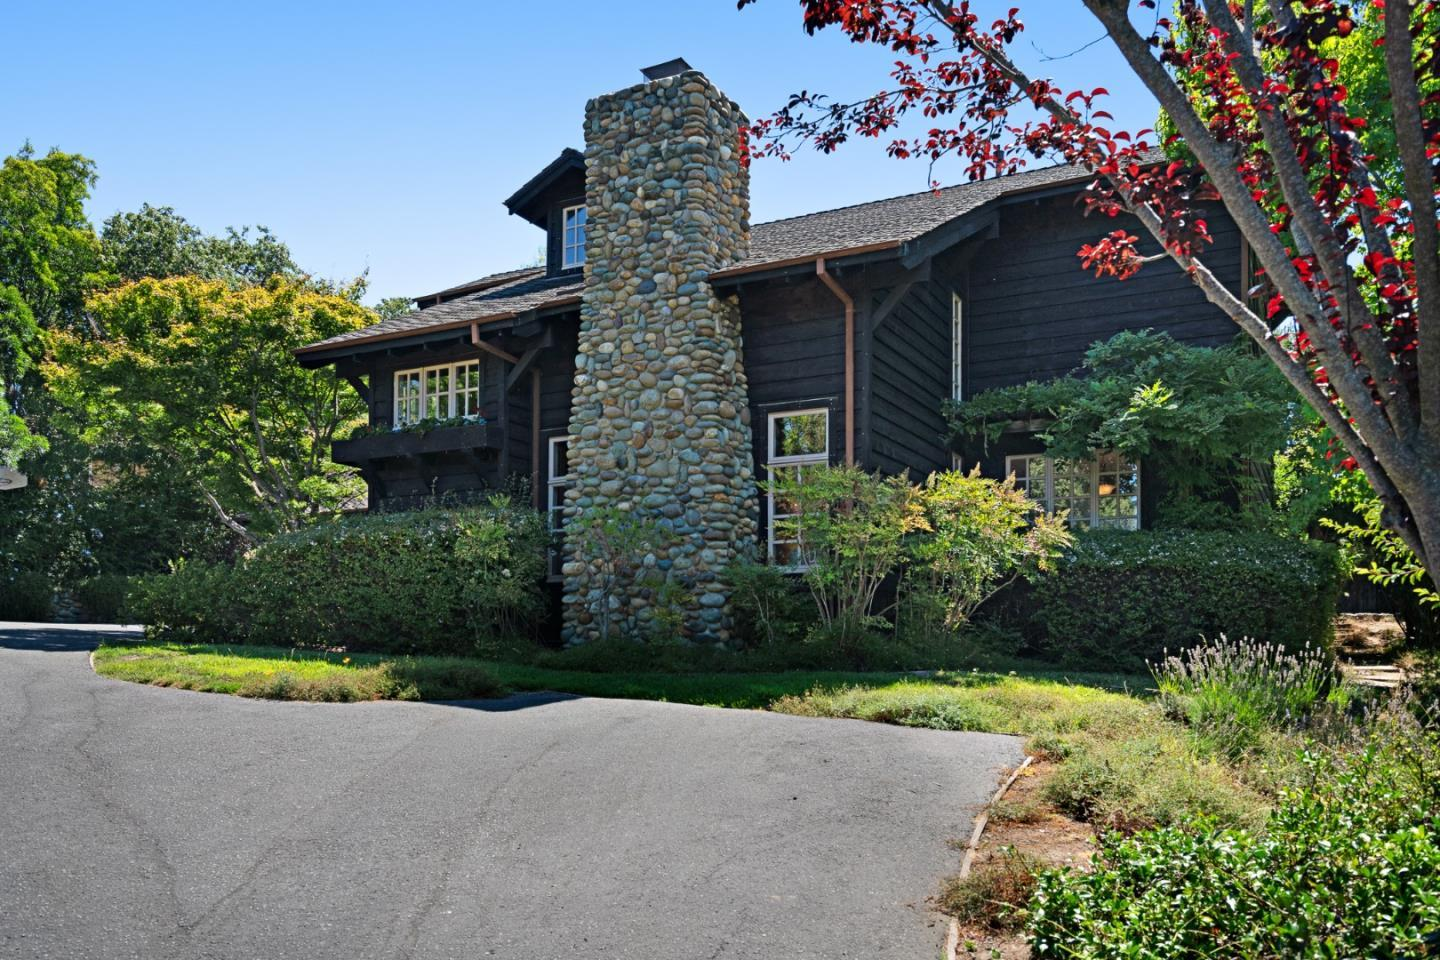 redwood estates singles & personals Mingle2 is the place to meet redwood estates singles there are thousands of men and women looking for love or friendship in redwood estates, california our free online dating site & mobile apps are full of single women and men in redwood estates looking for serious relationships, a little online flirtation, or new friends to go out with.